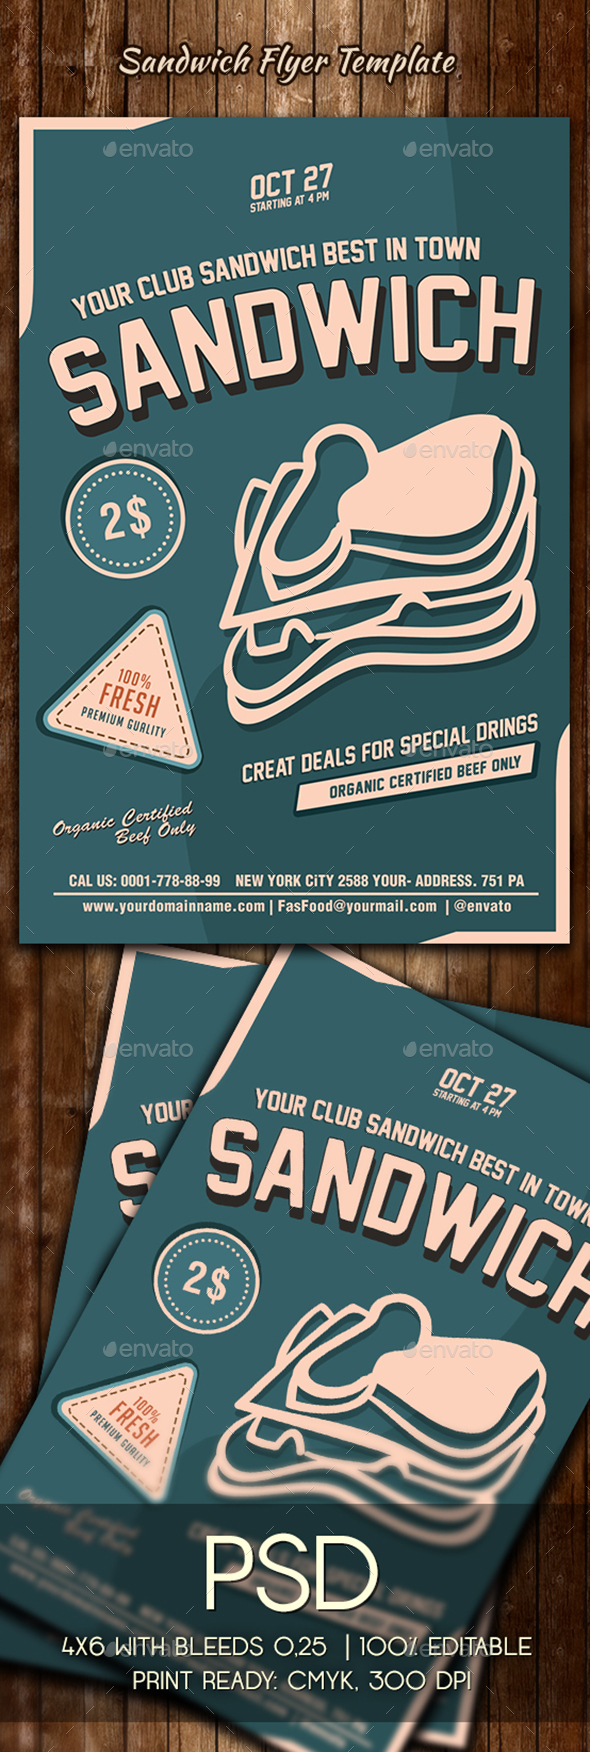 Sandwich Flyer Template - Restaurant Flyers